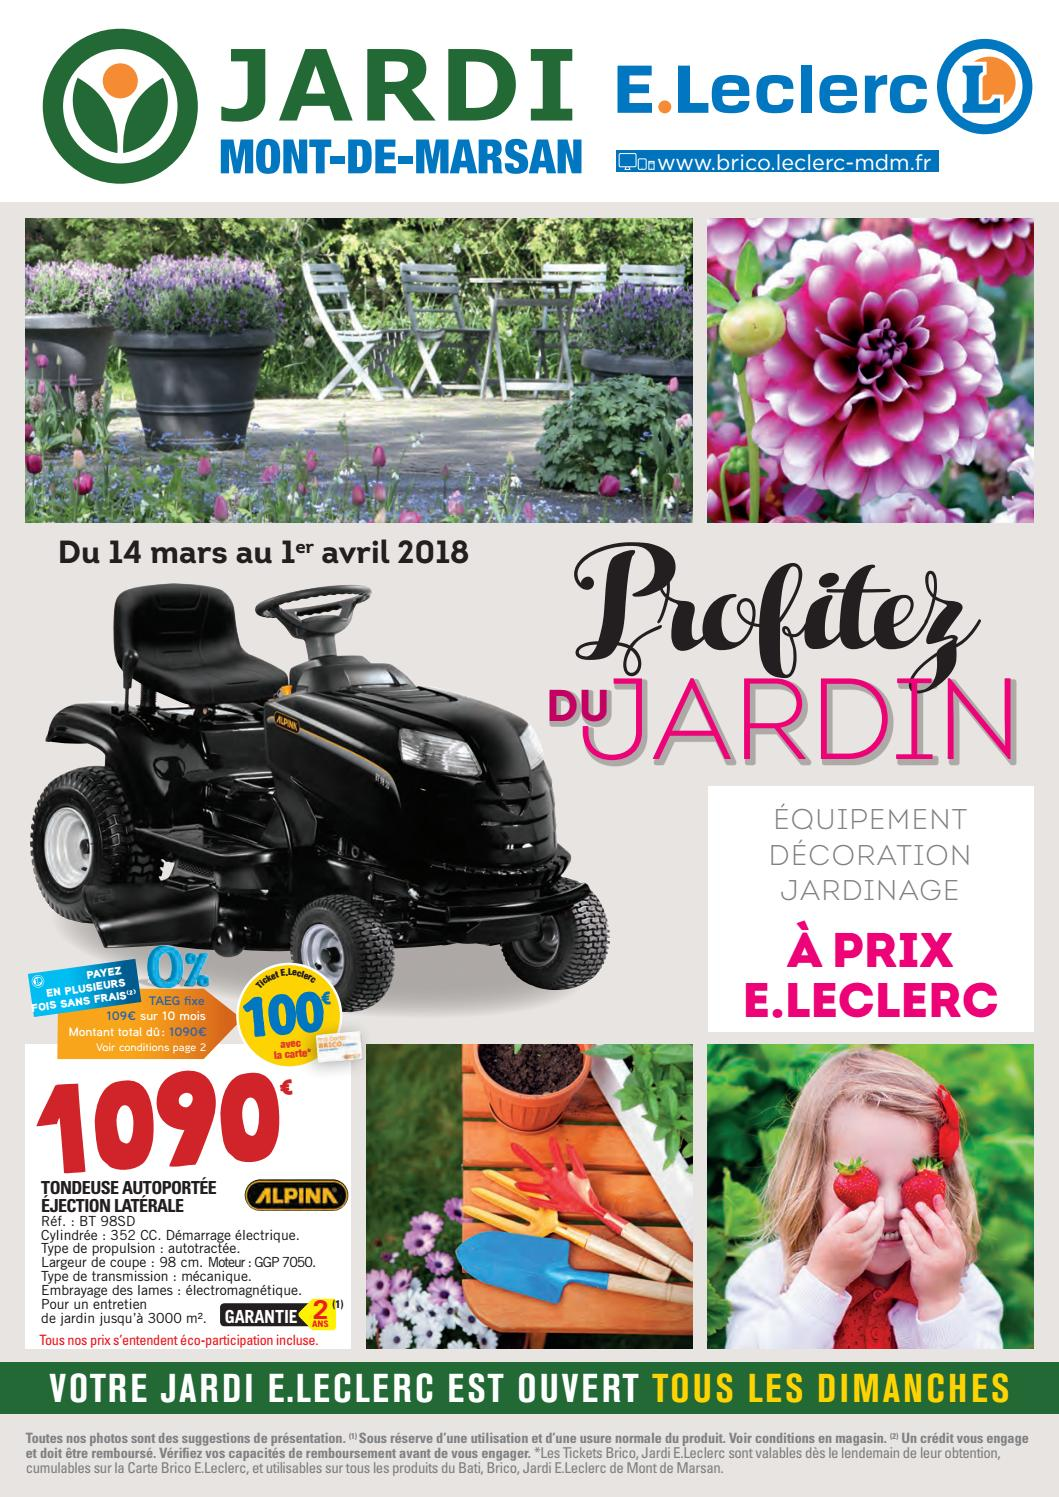 CATALOGUE JARDIN - JARDI E.LECLERC by Chou Magazine - issuu